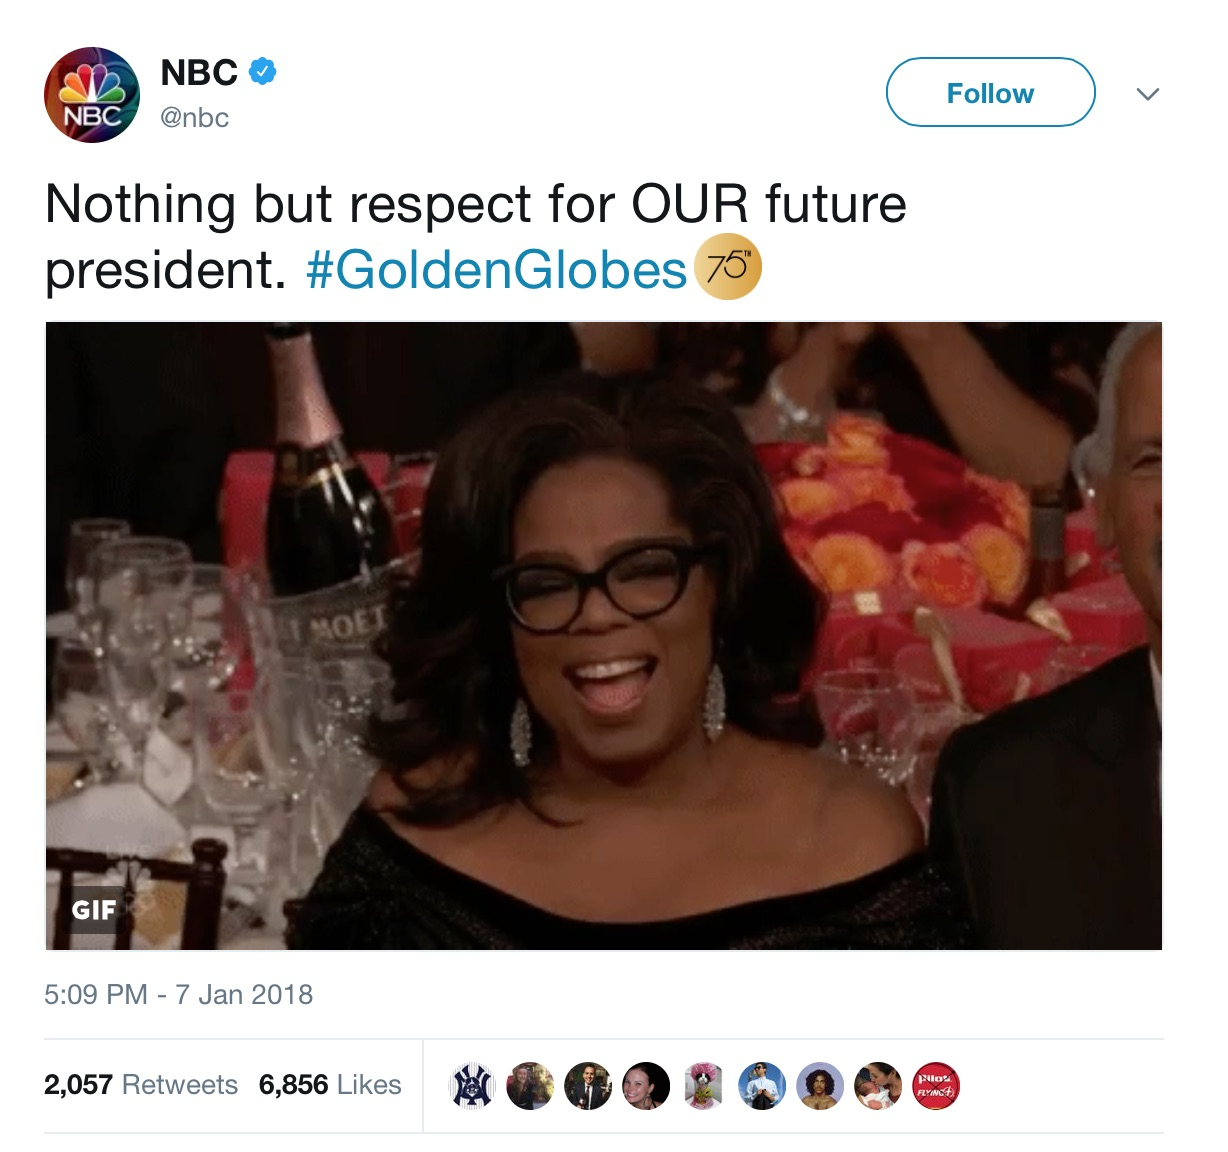 Oprah Winfrey Announces She's Running For President, NBC News Oprah tweet